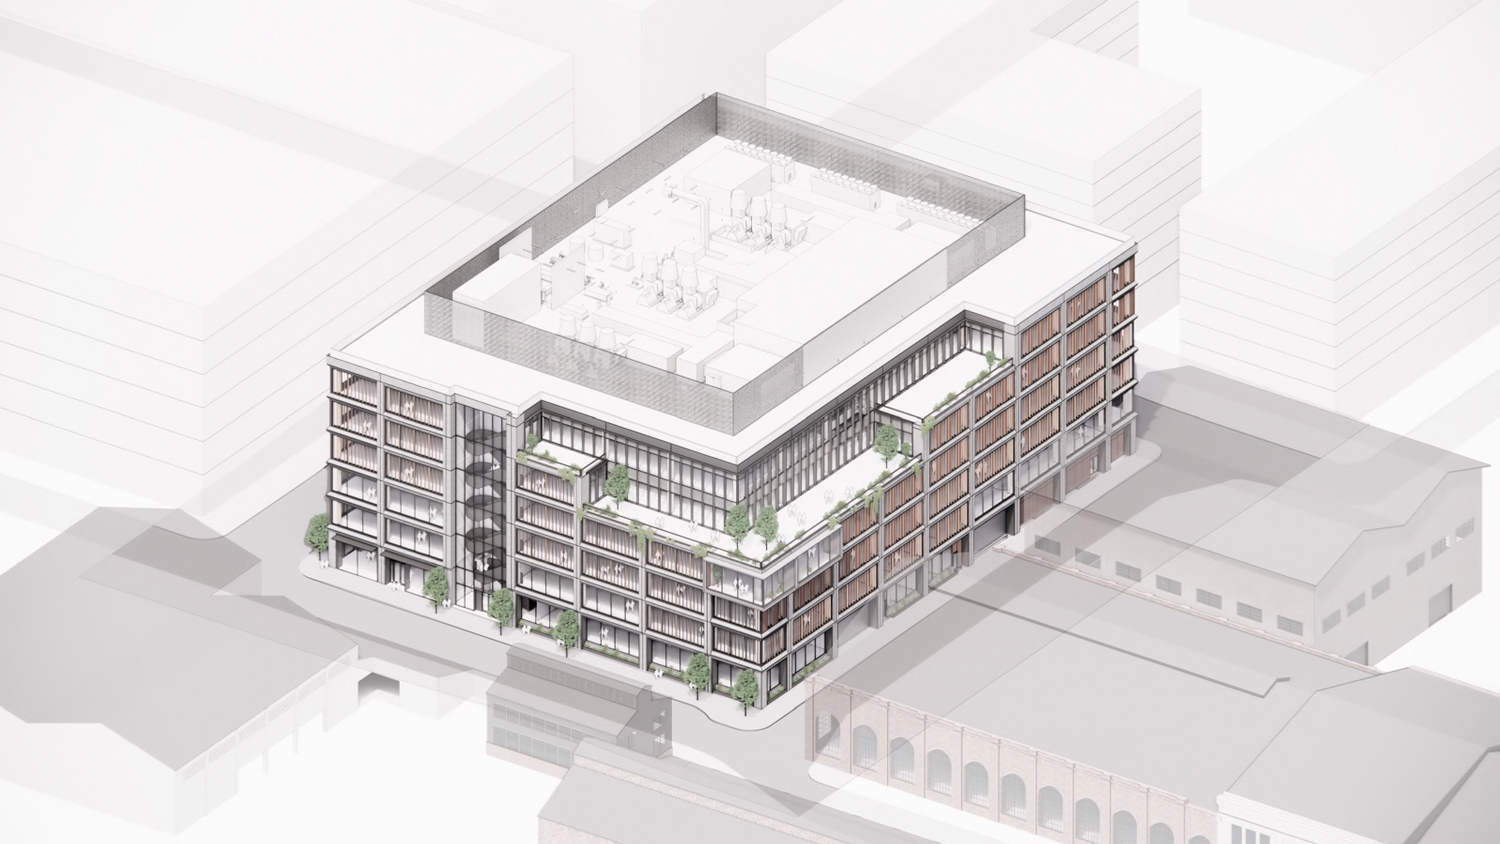 Pier 70's Parcel A at 88 Maryland Street axonometric aerial view, design by DES and Grimshaw